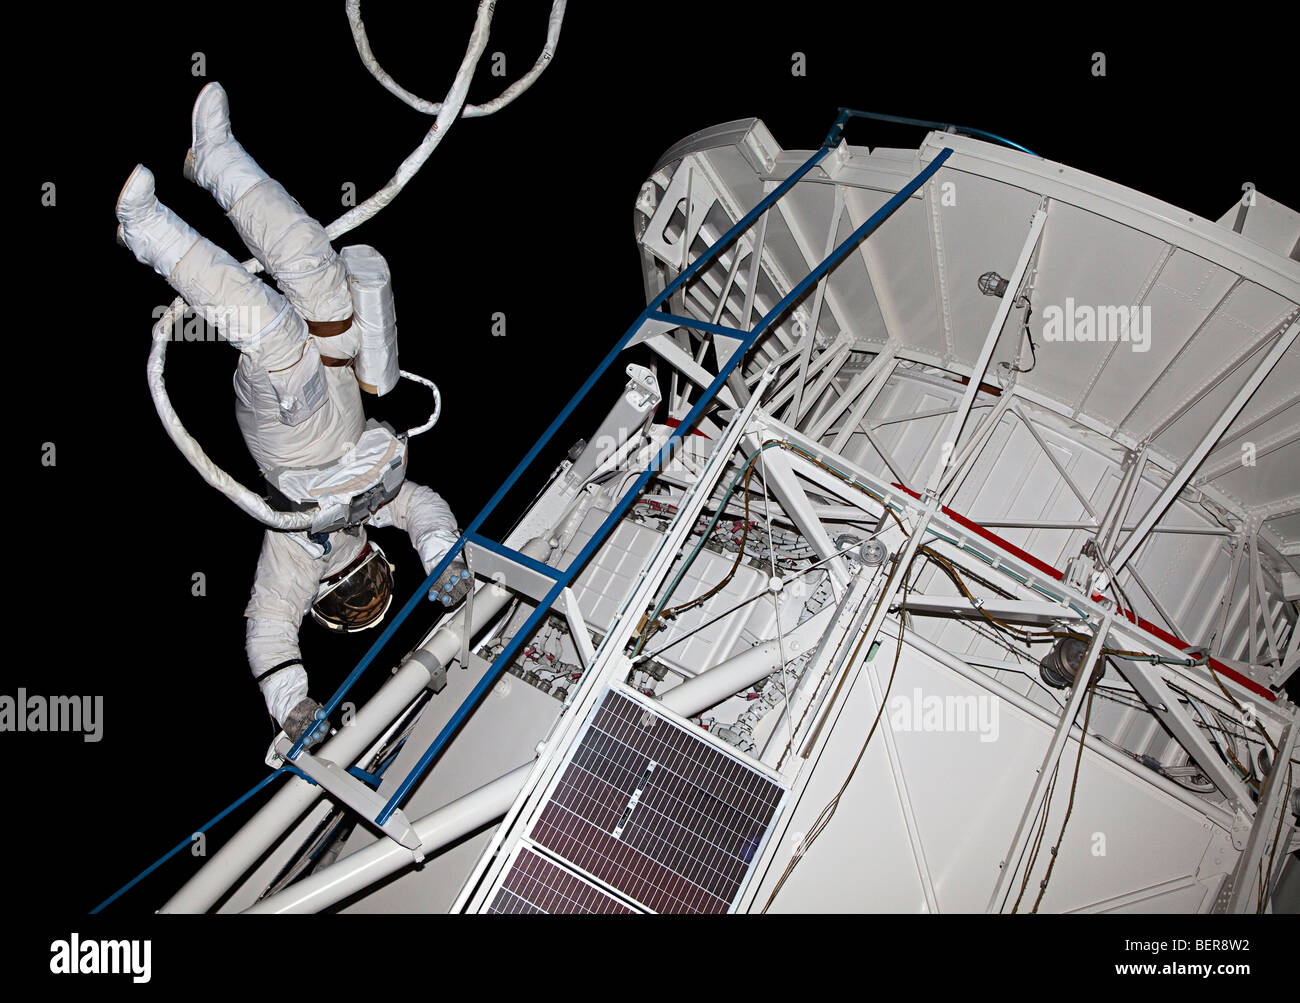 Astronaut On Space Walk Outside Space Lab In Museum Exhibit NASA - Nasa museums in usa